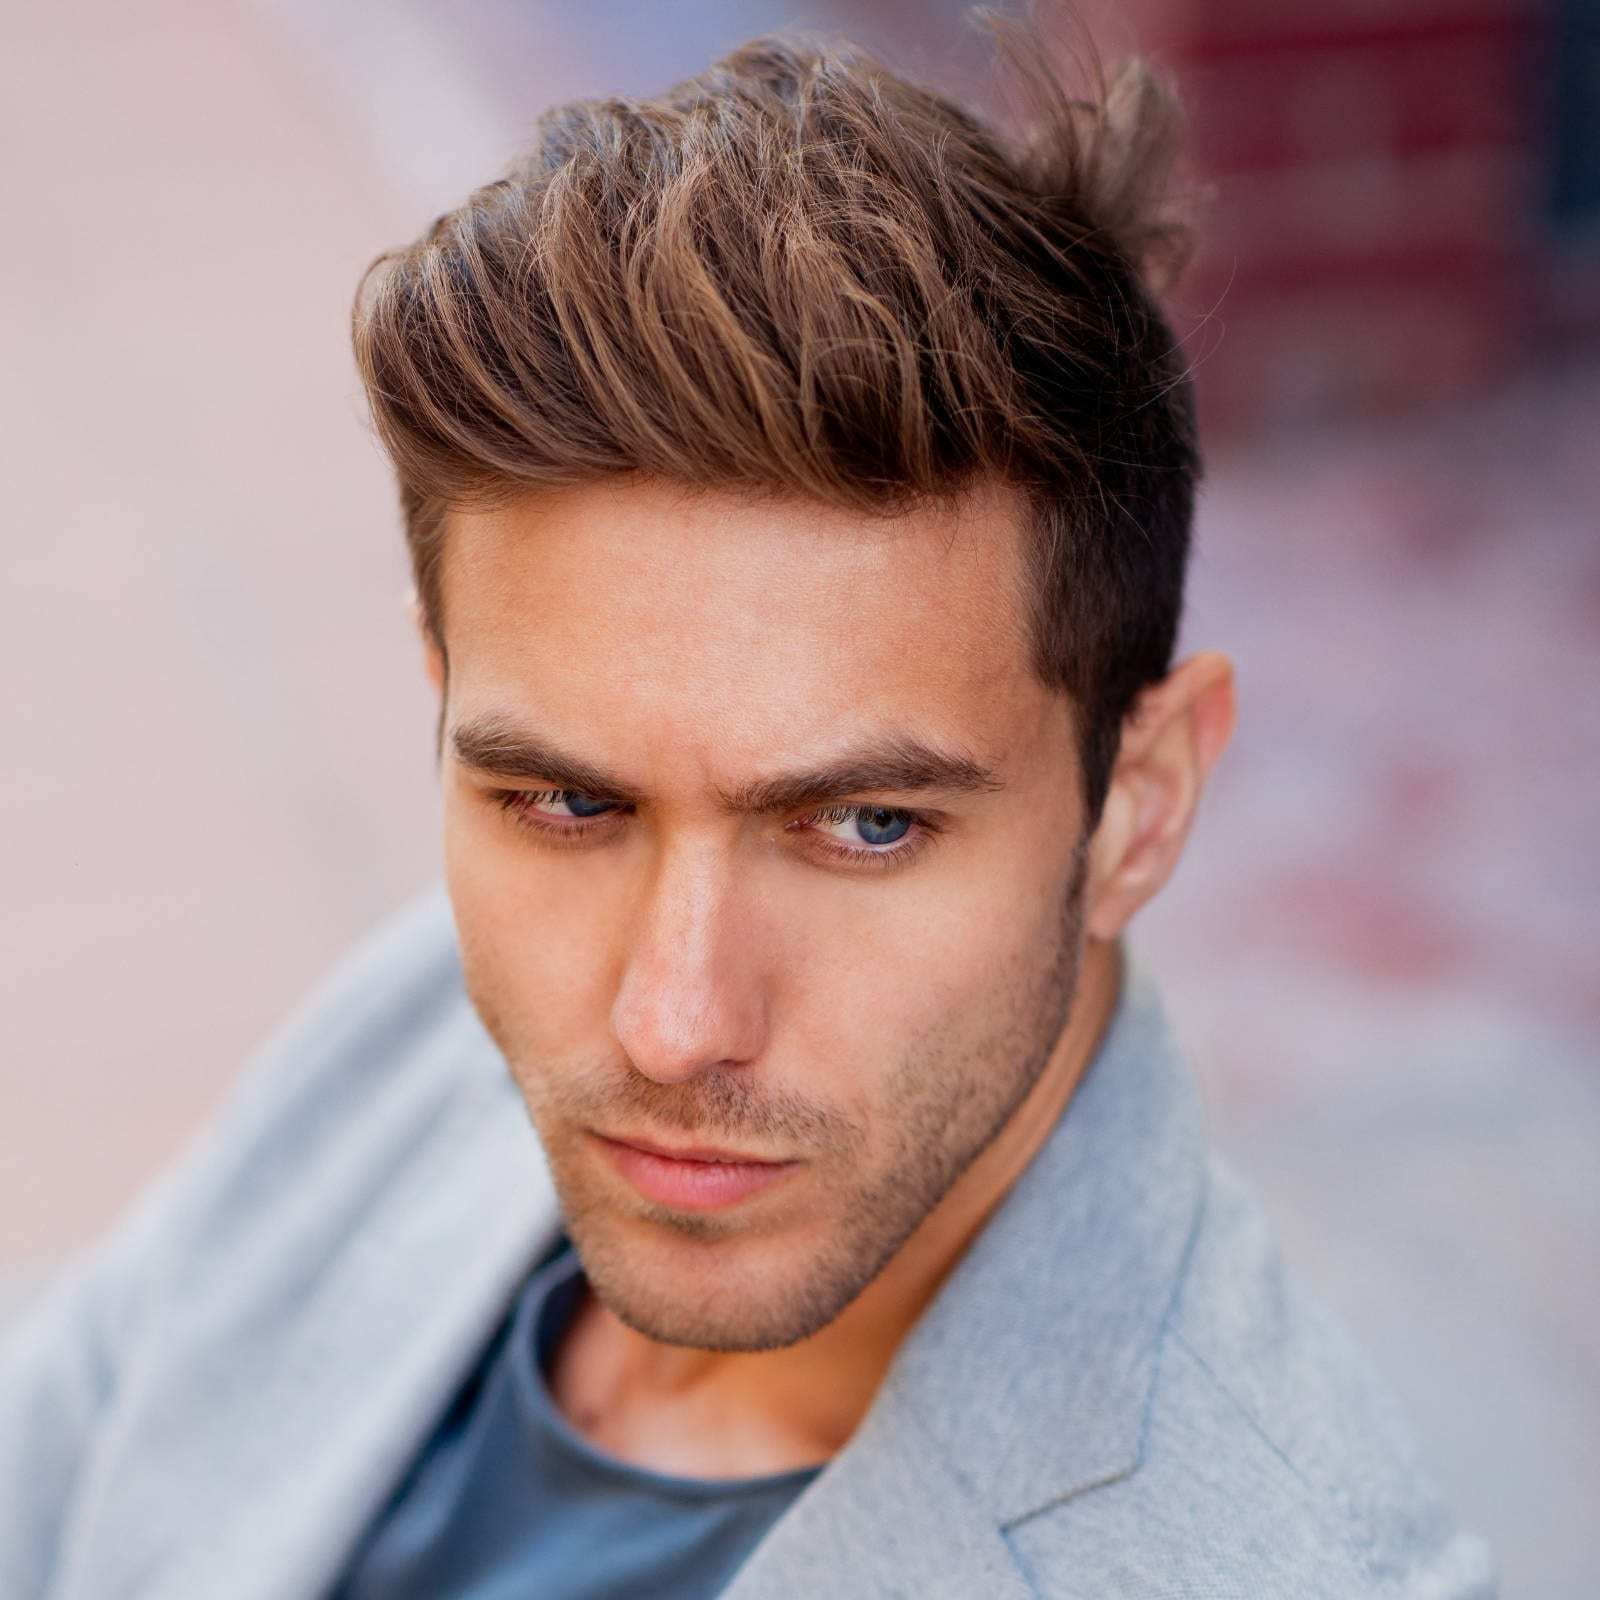 The Best 30 Textured Men S Hair For 2019 The Visual Guide Pictures